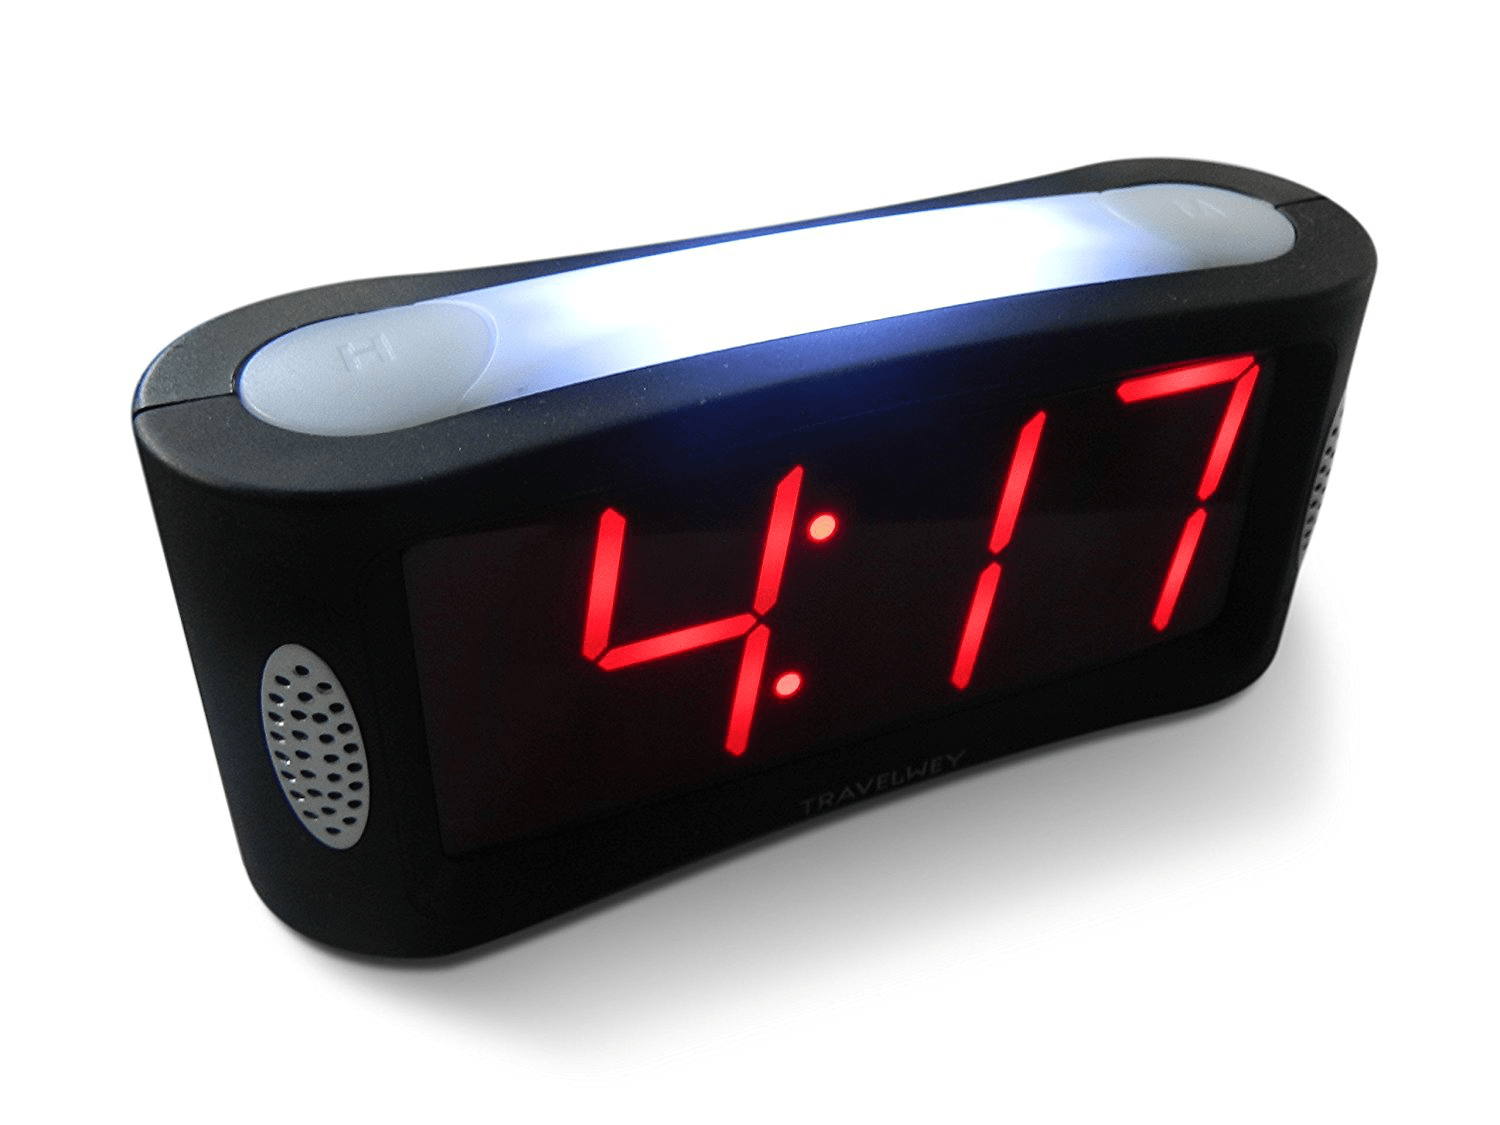 4 Best Alarm Clock Options - Our Top Picks